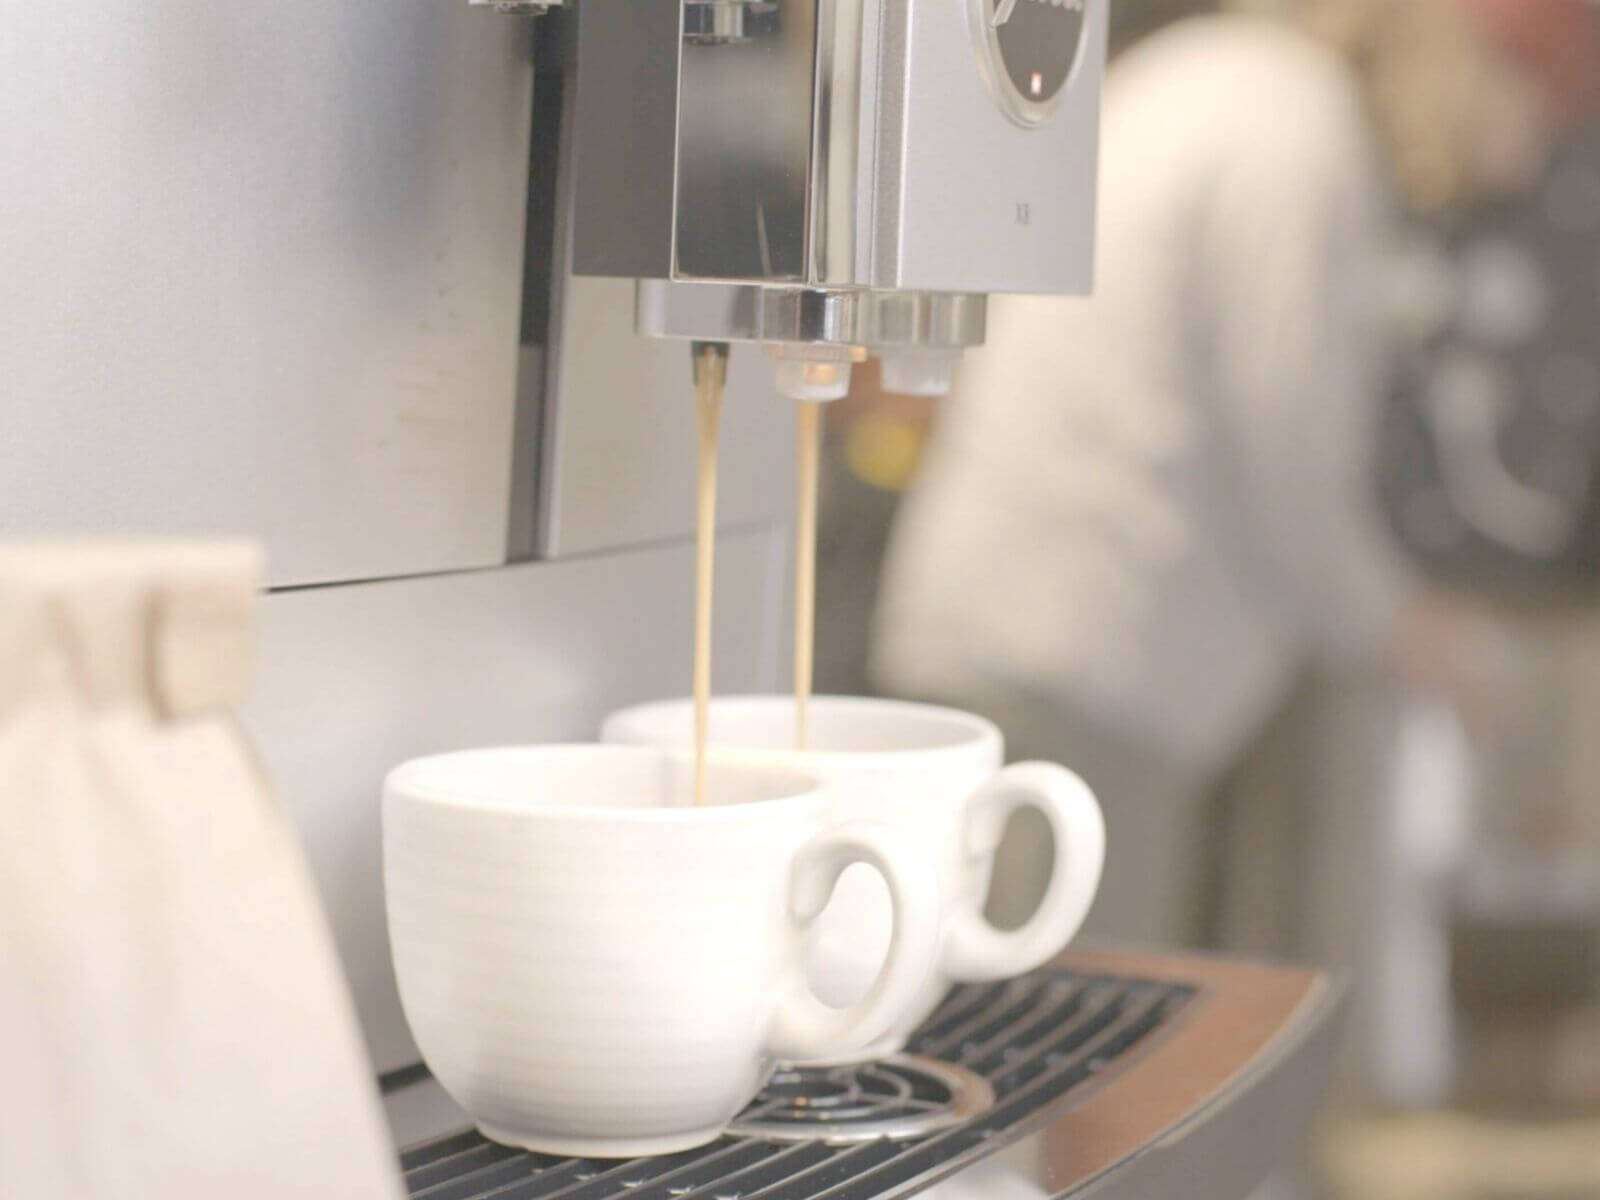 Perfectly brewed business coffee